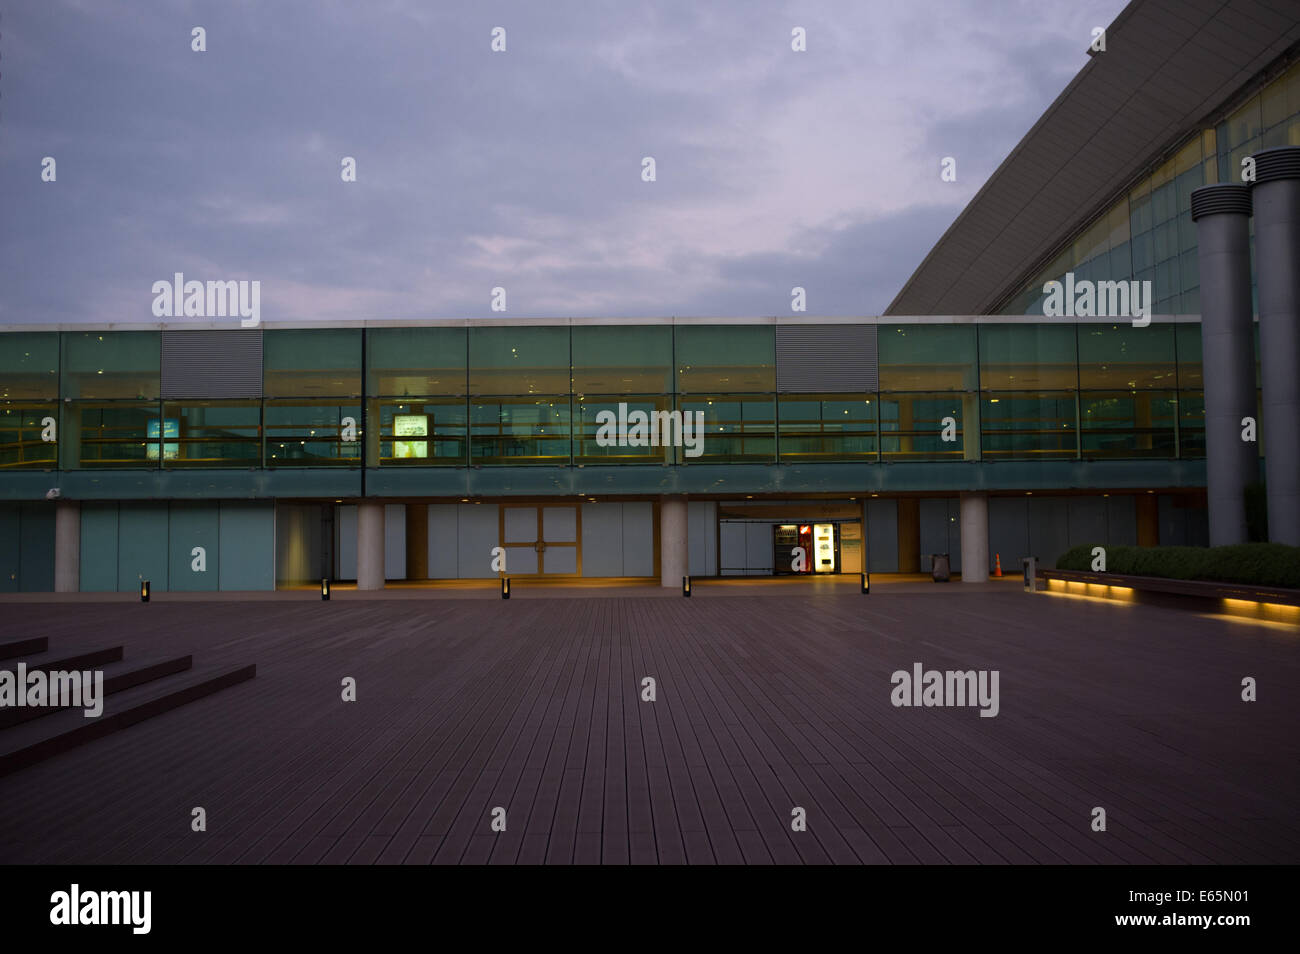 T1 Barcelona airport terminal. - Stock Image